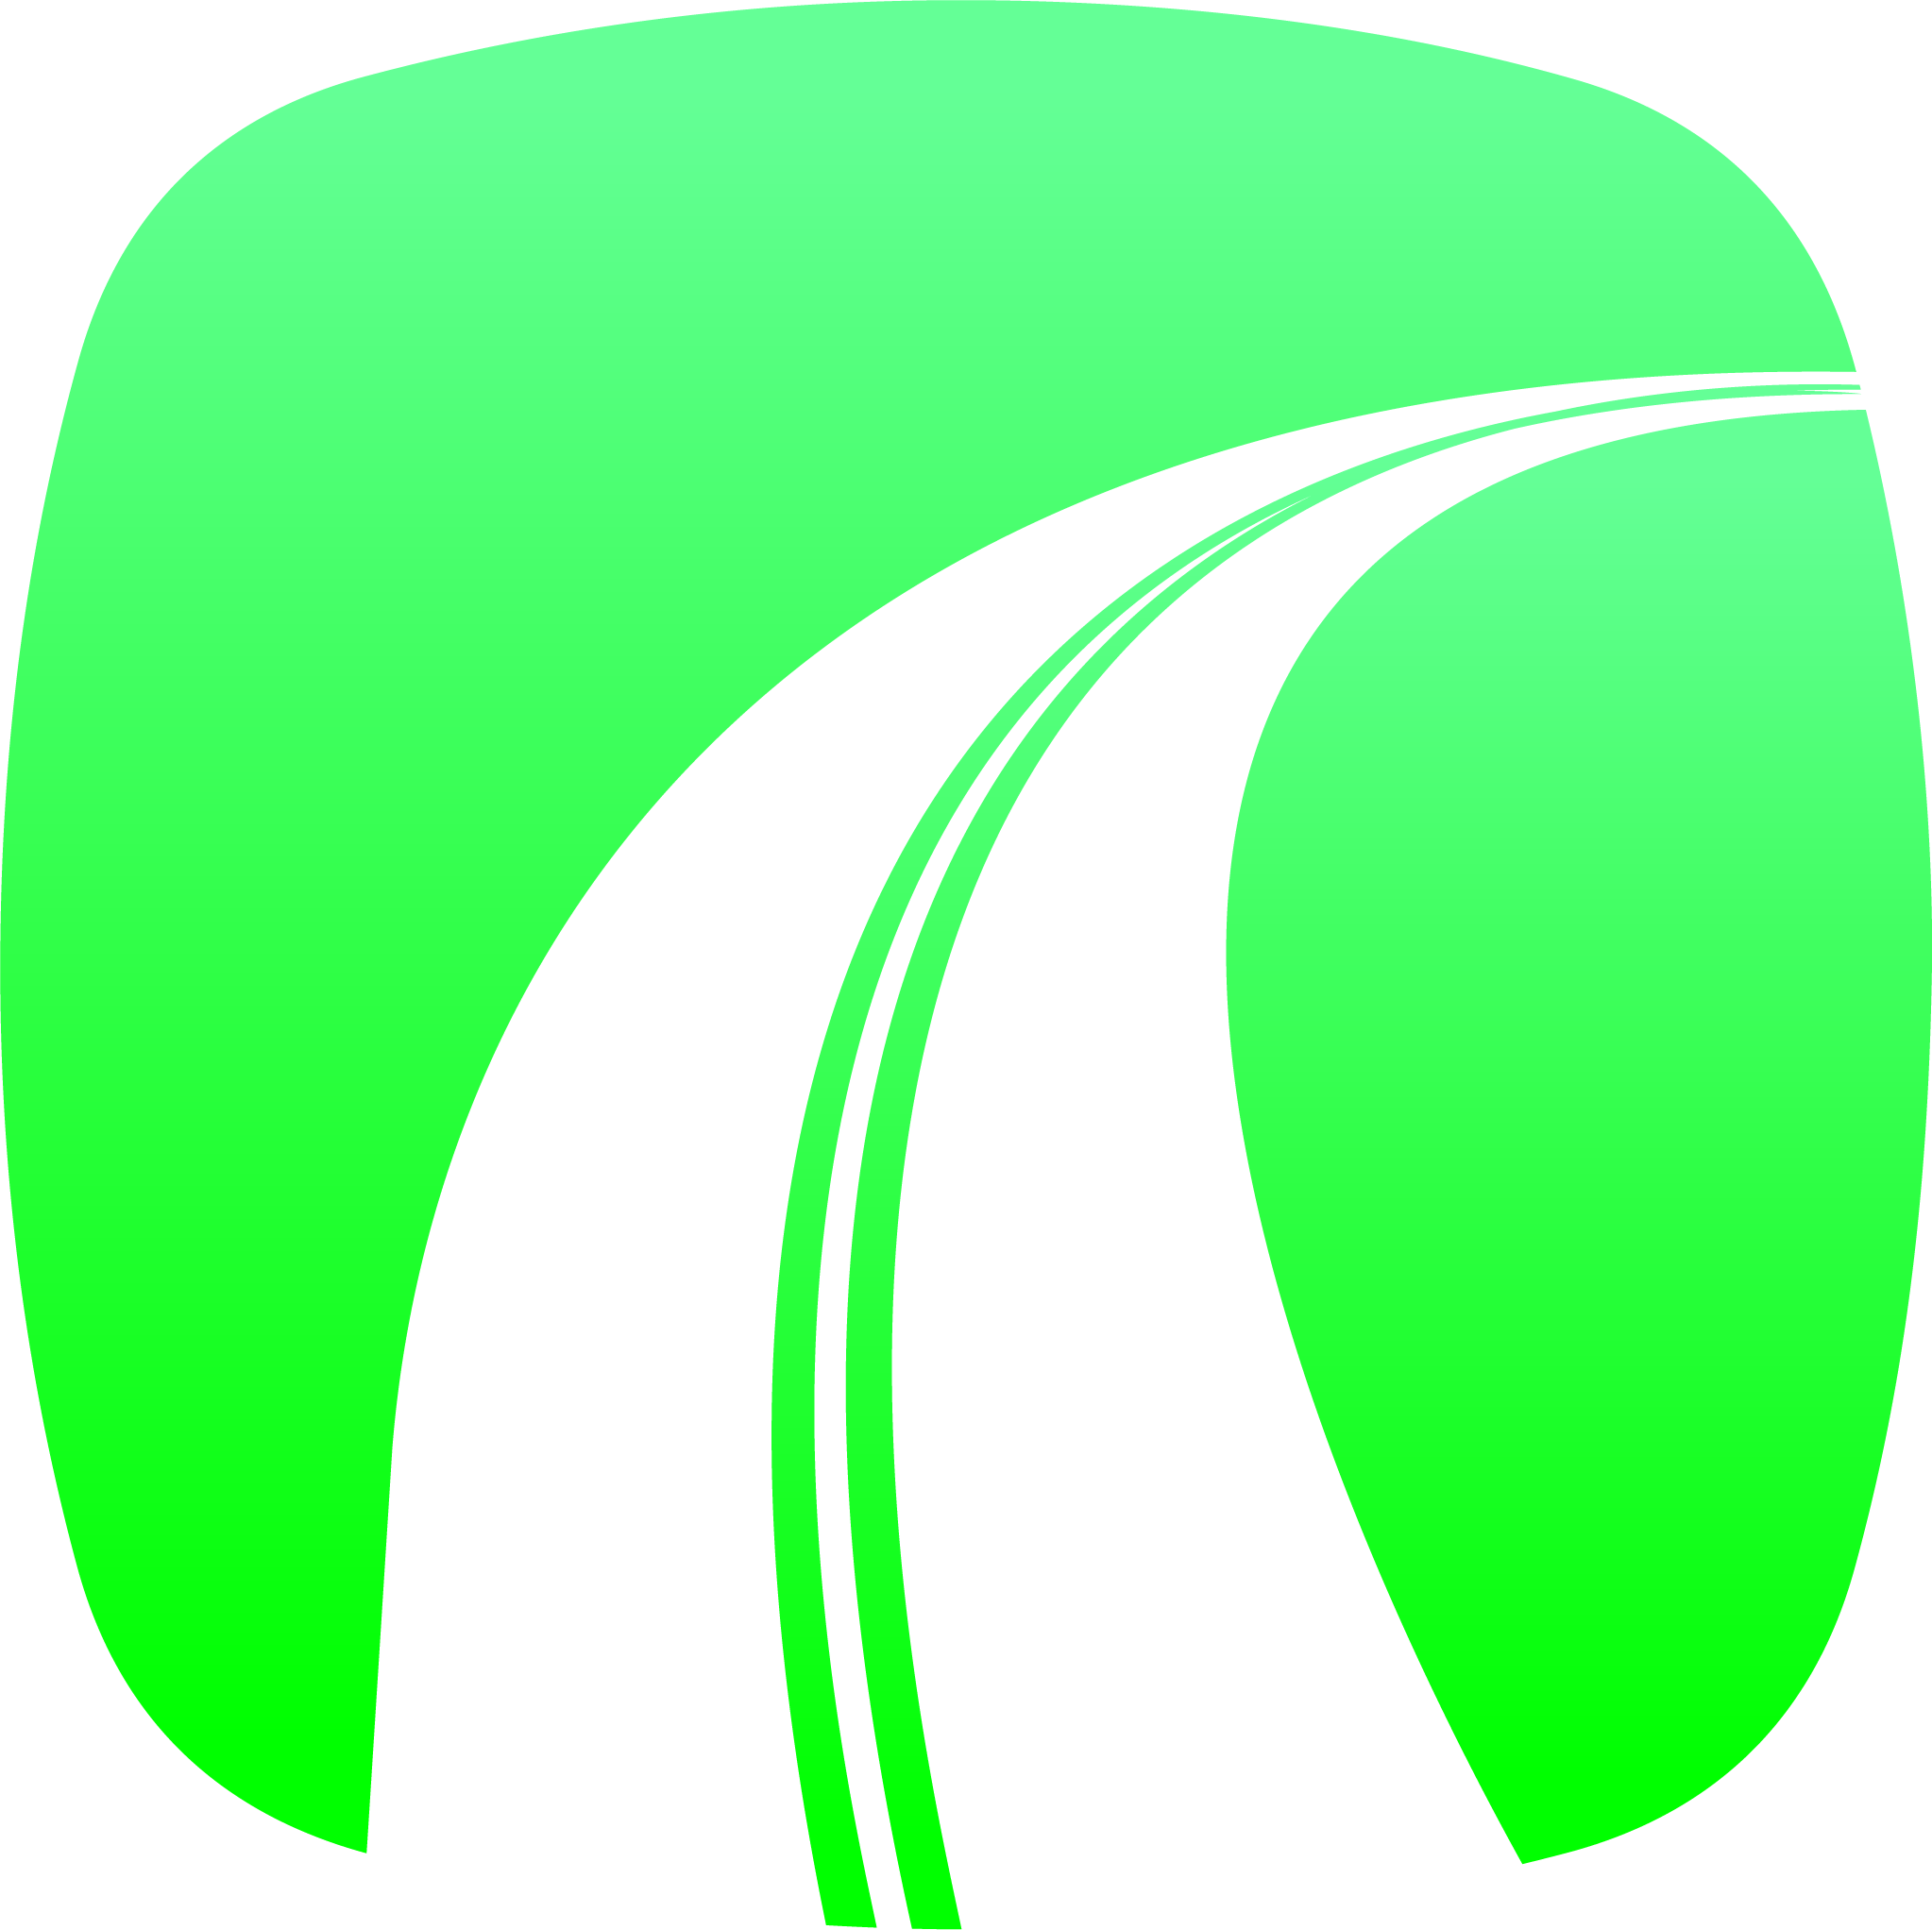 AppIcon - NoBG - PNG.png